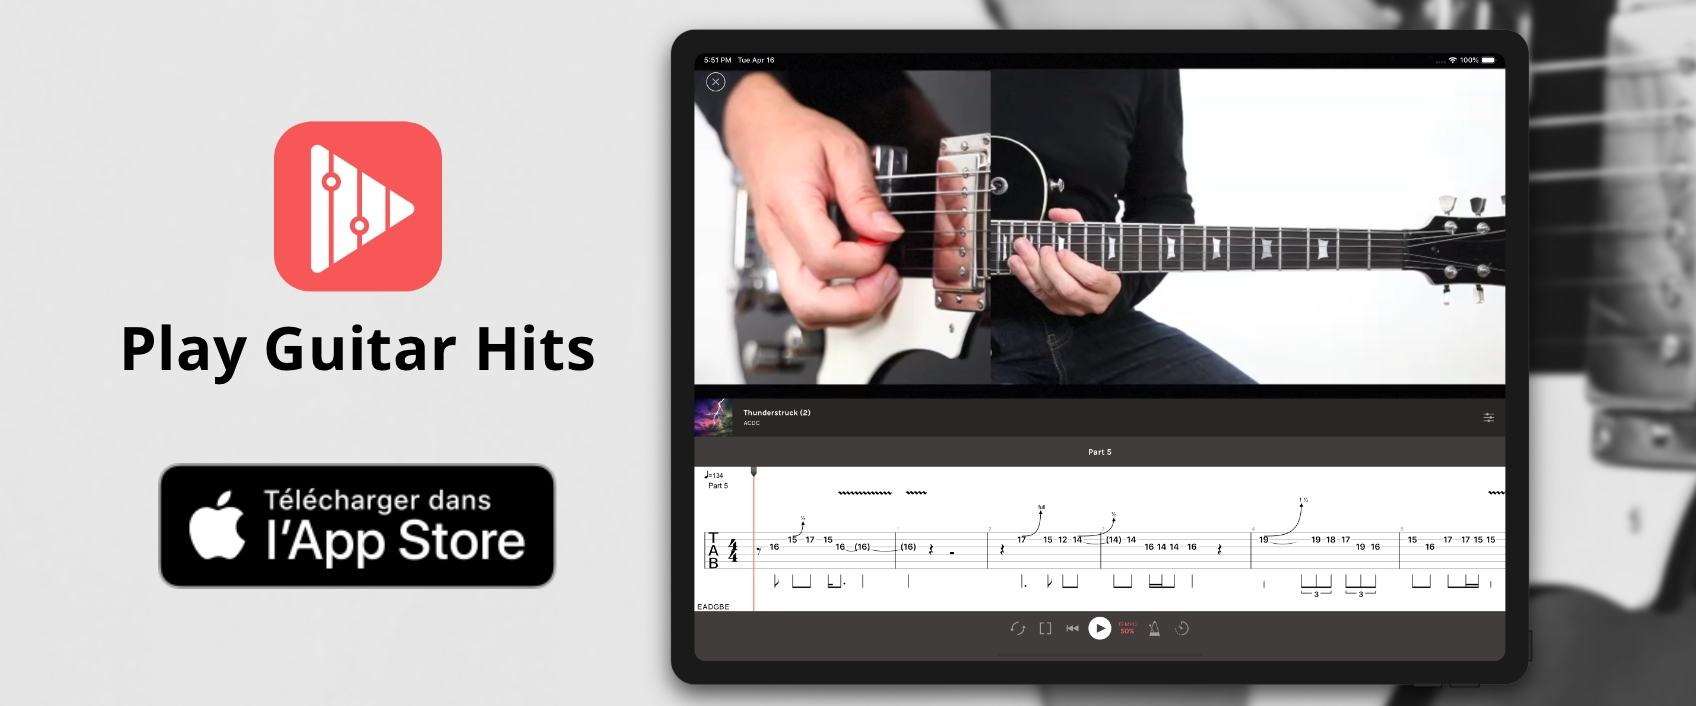 Nouvelle appli Play Guitar Hits